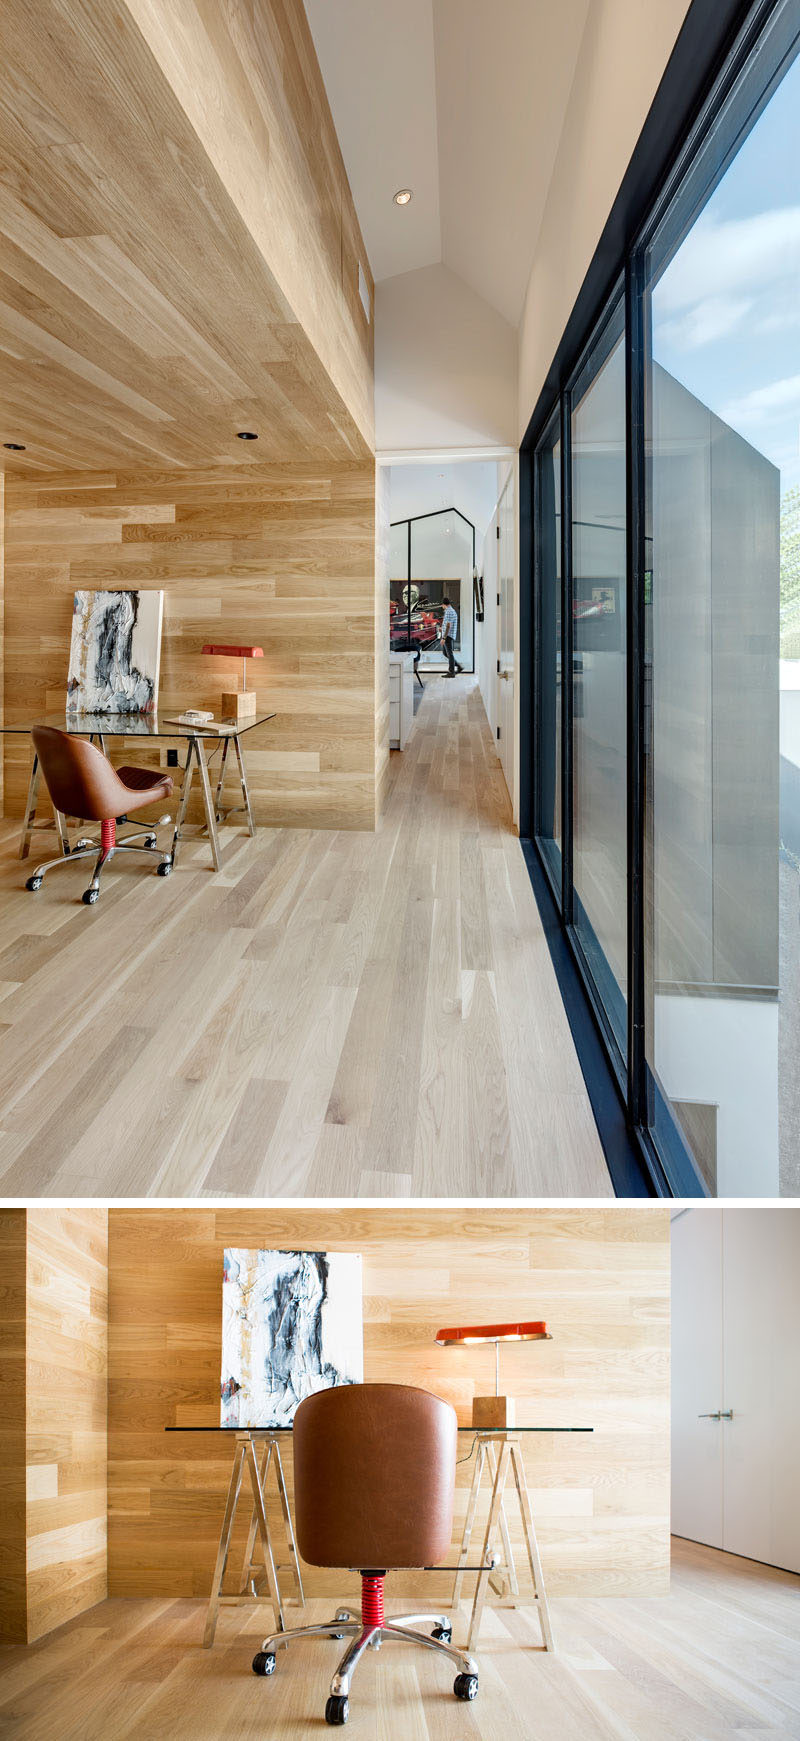 This modern house has a small hallway that leads to a home office nook surrounded by wood. #HomeOffice #OfficeNook #InteriorDesign